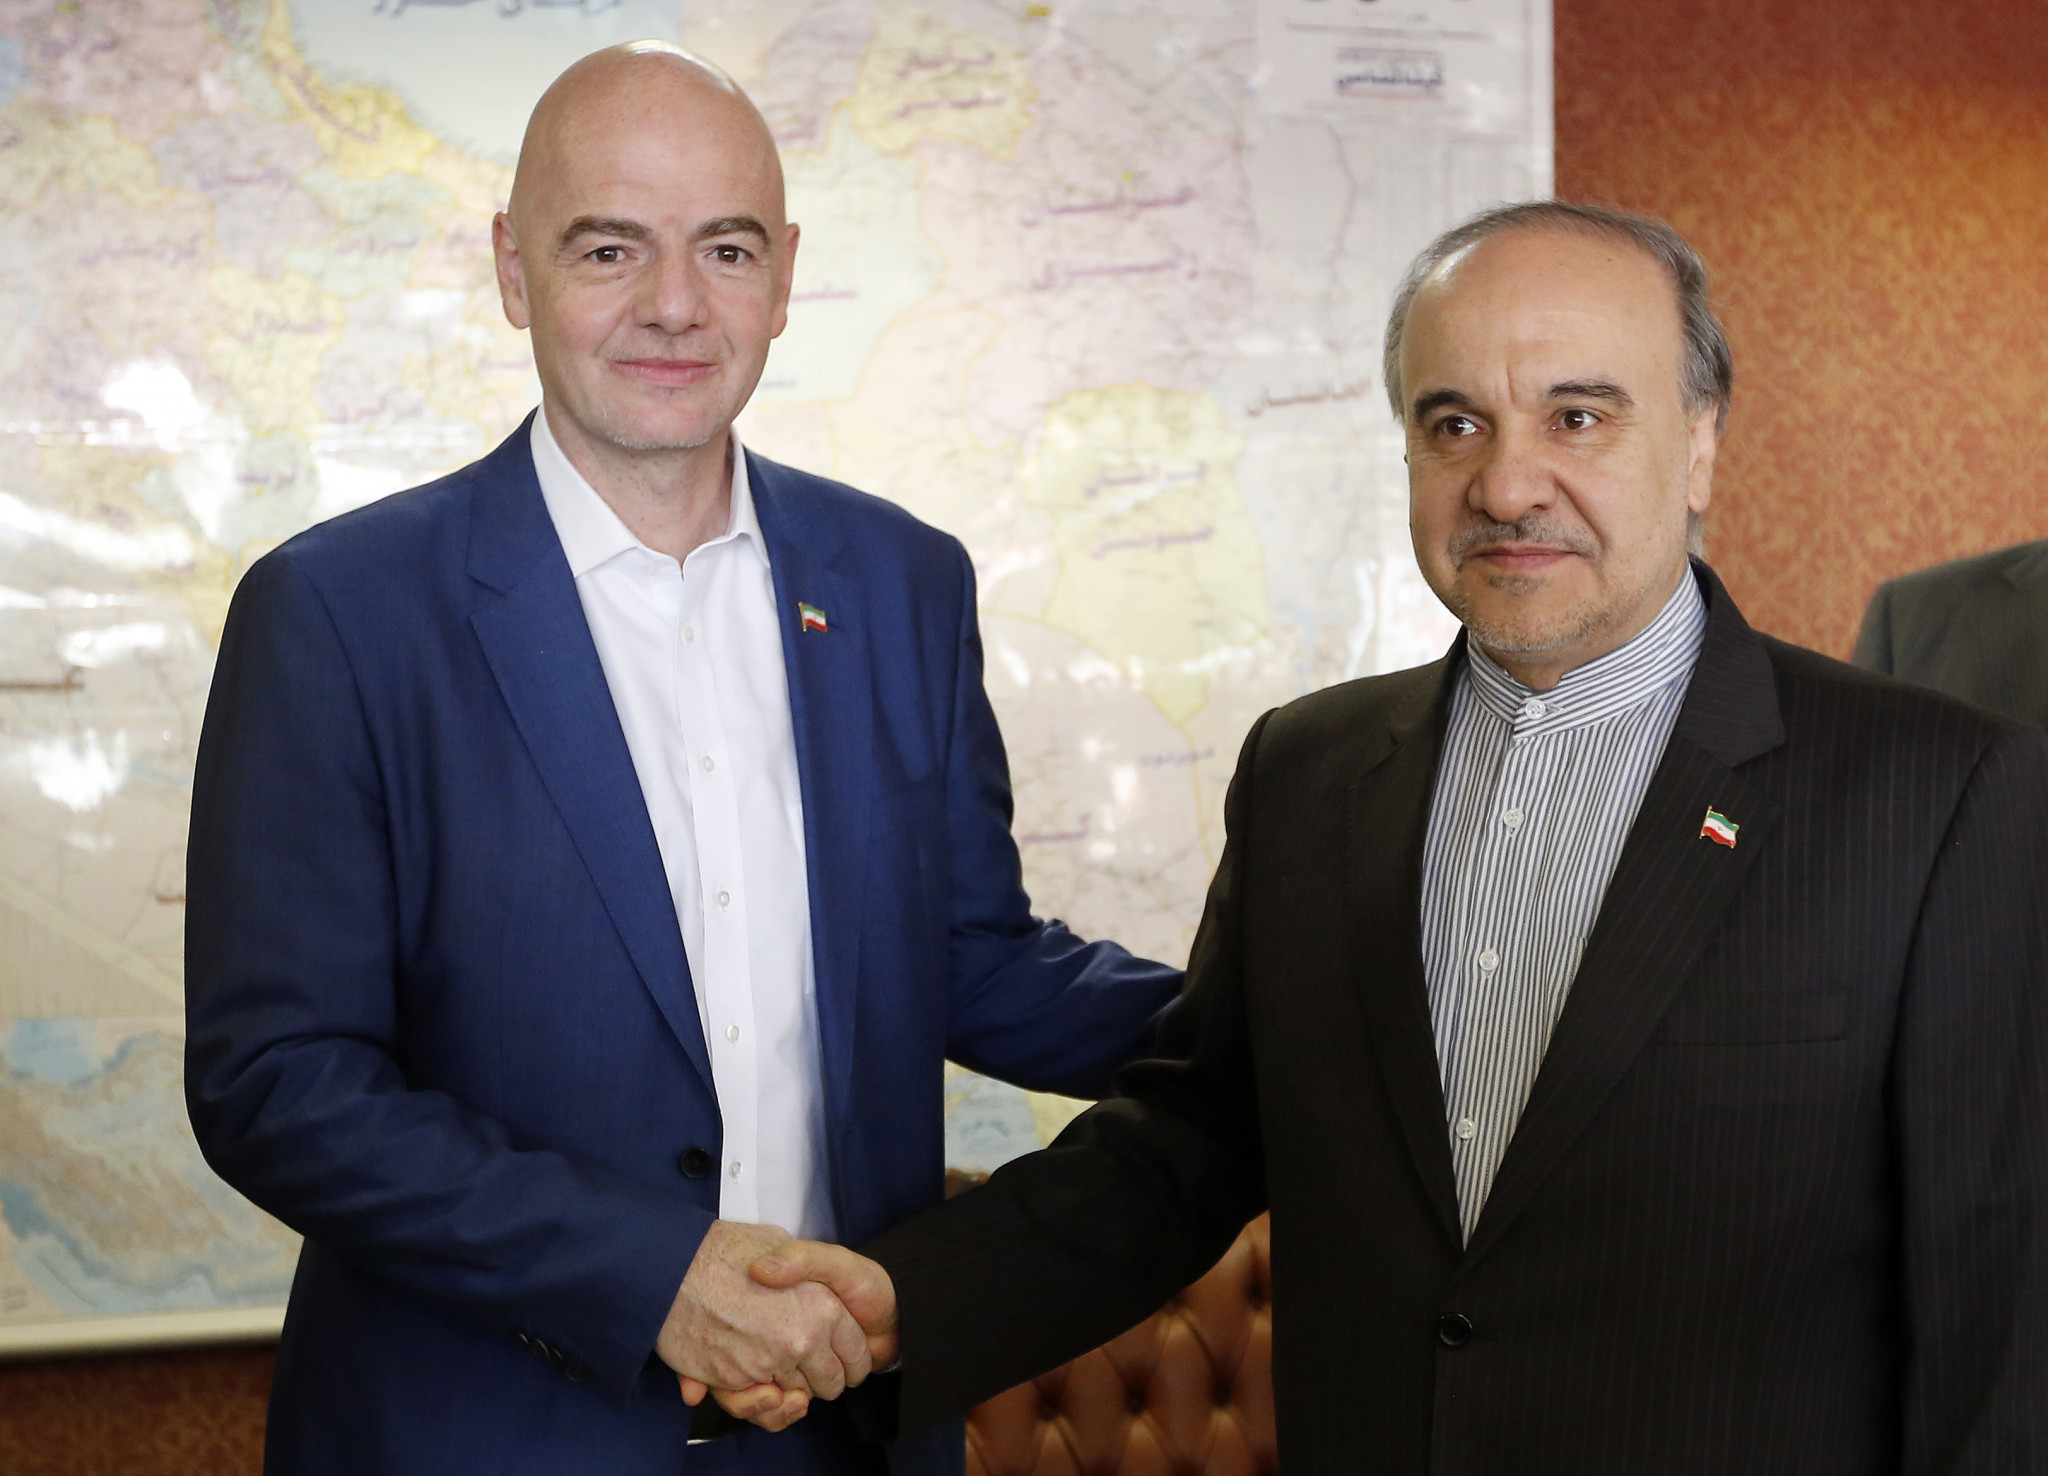 FIFA President Gianni Infantino met Iran's Minister of Youth Affairs and Sports Masoud Soltanifar on a visit to the country in December 2018, when the elections were among items discussed ©Getty Images